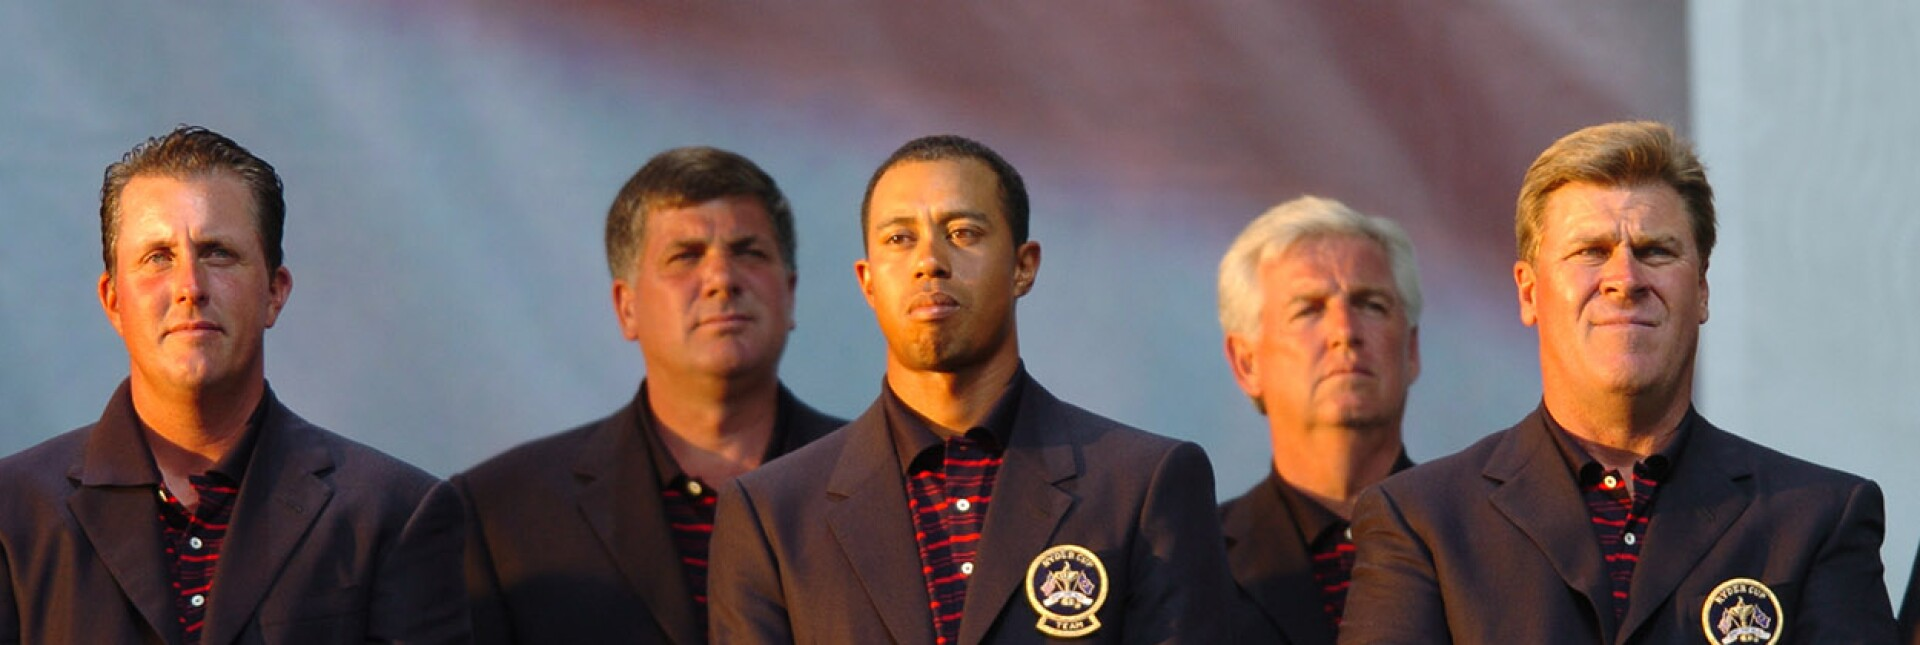 phil-mickelson-tiger-woods-ryder-cup-usa-pairings-oakland-hills.jpg